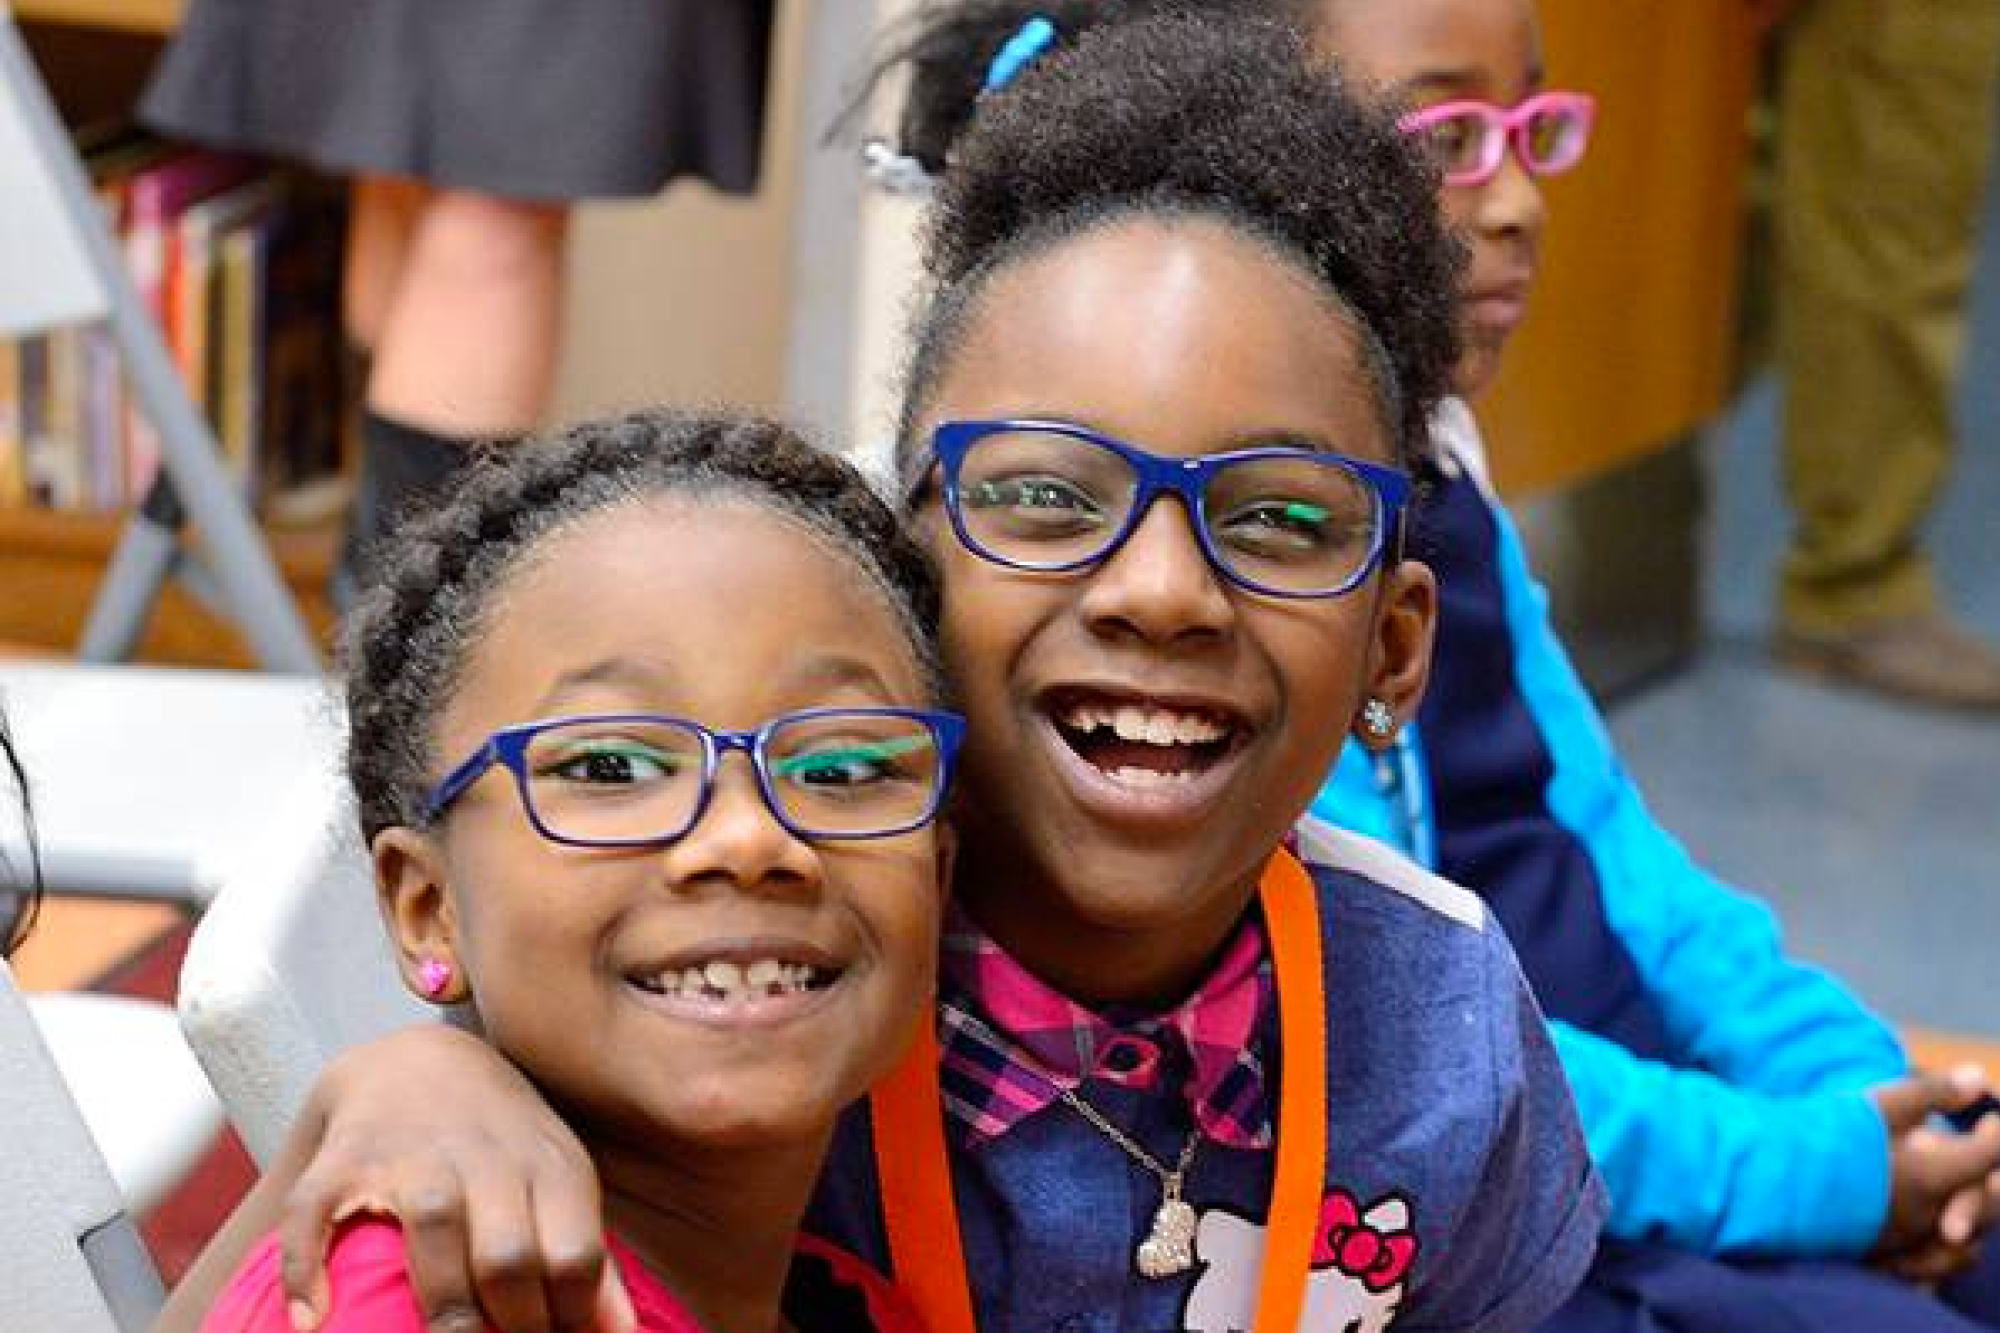 Two children smiling wearing glasses